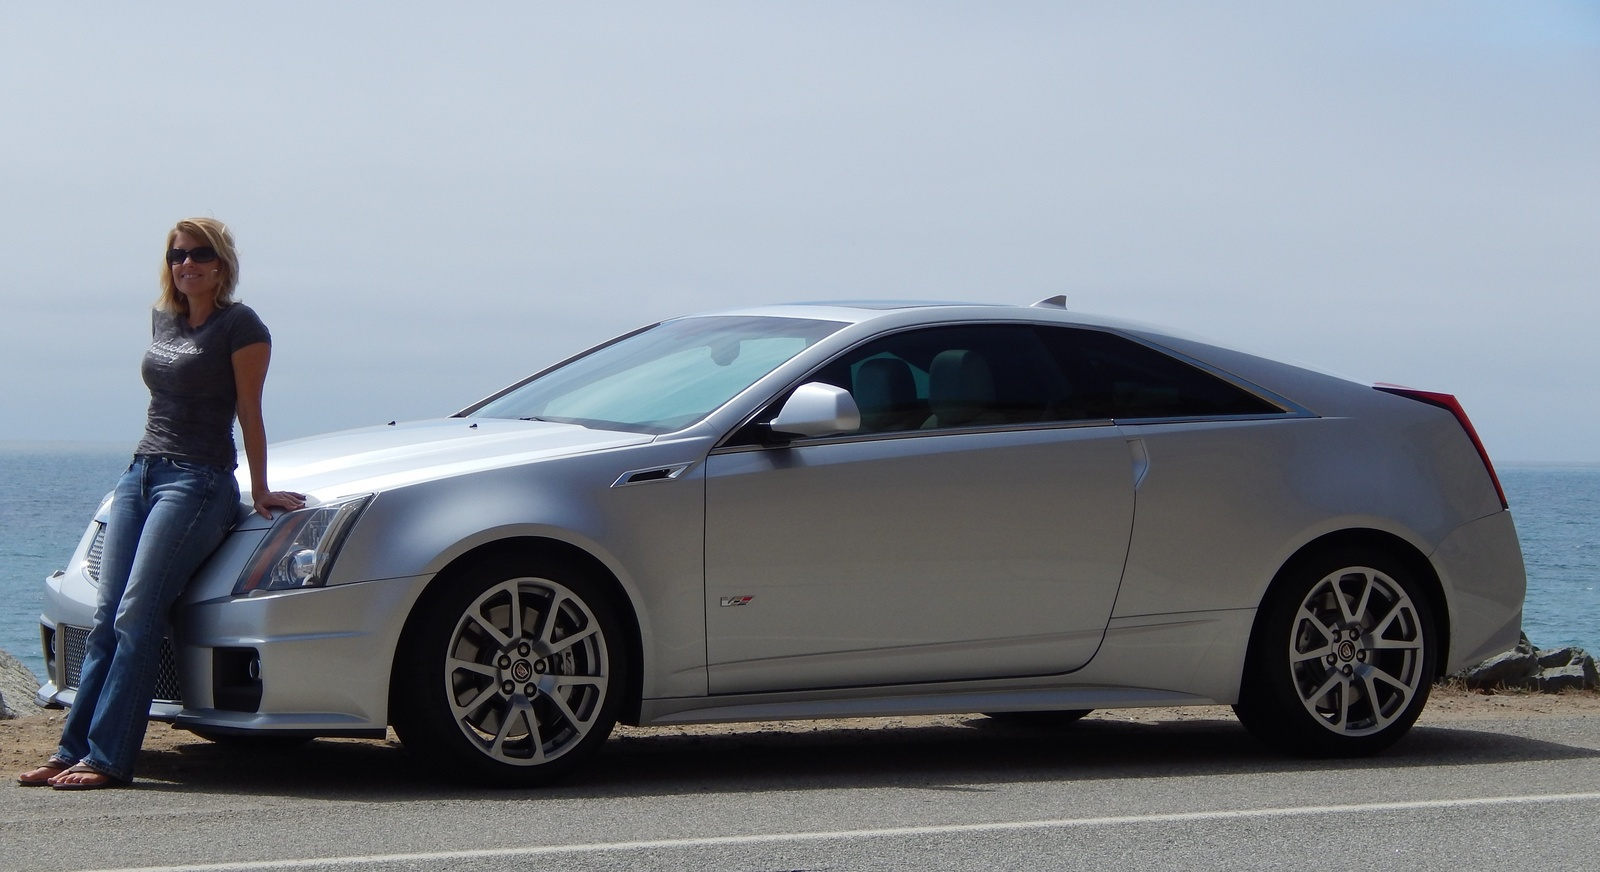 2012 Cadillac CTS-V Coupe - Pictures - CarGurus